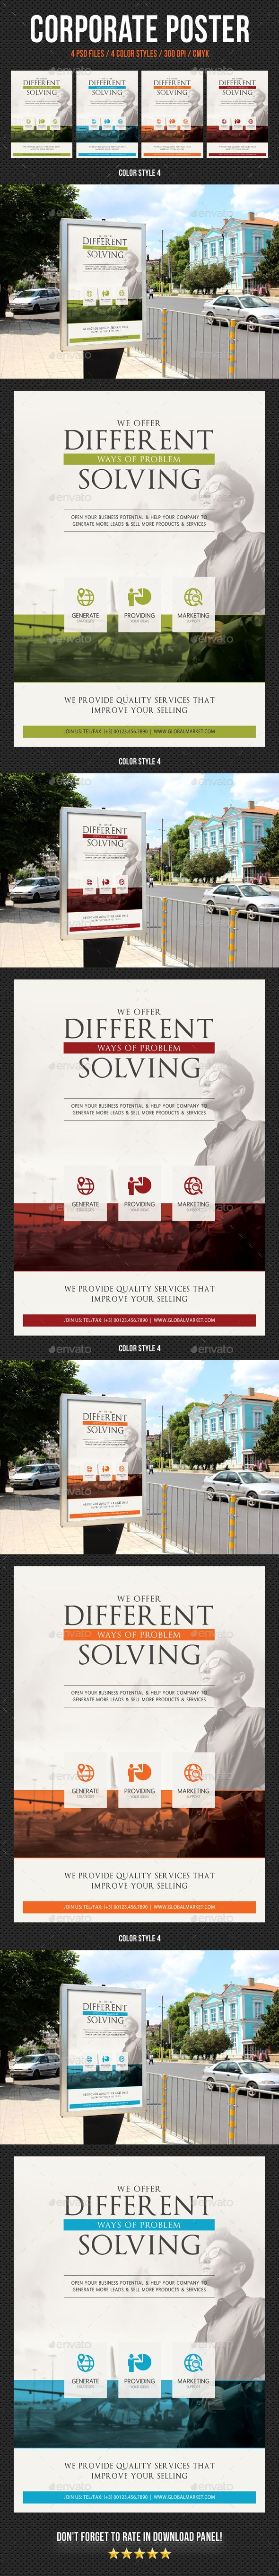 Corporate business poster template v10 business poster business corporate business poster template v10 by rapidgraf create bold posters ads promotions or presentations with these psd templates to give your business friedricerecipe Choice Image